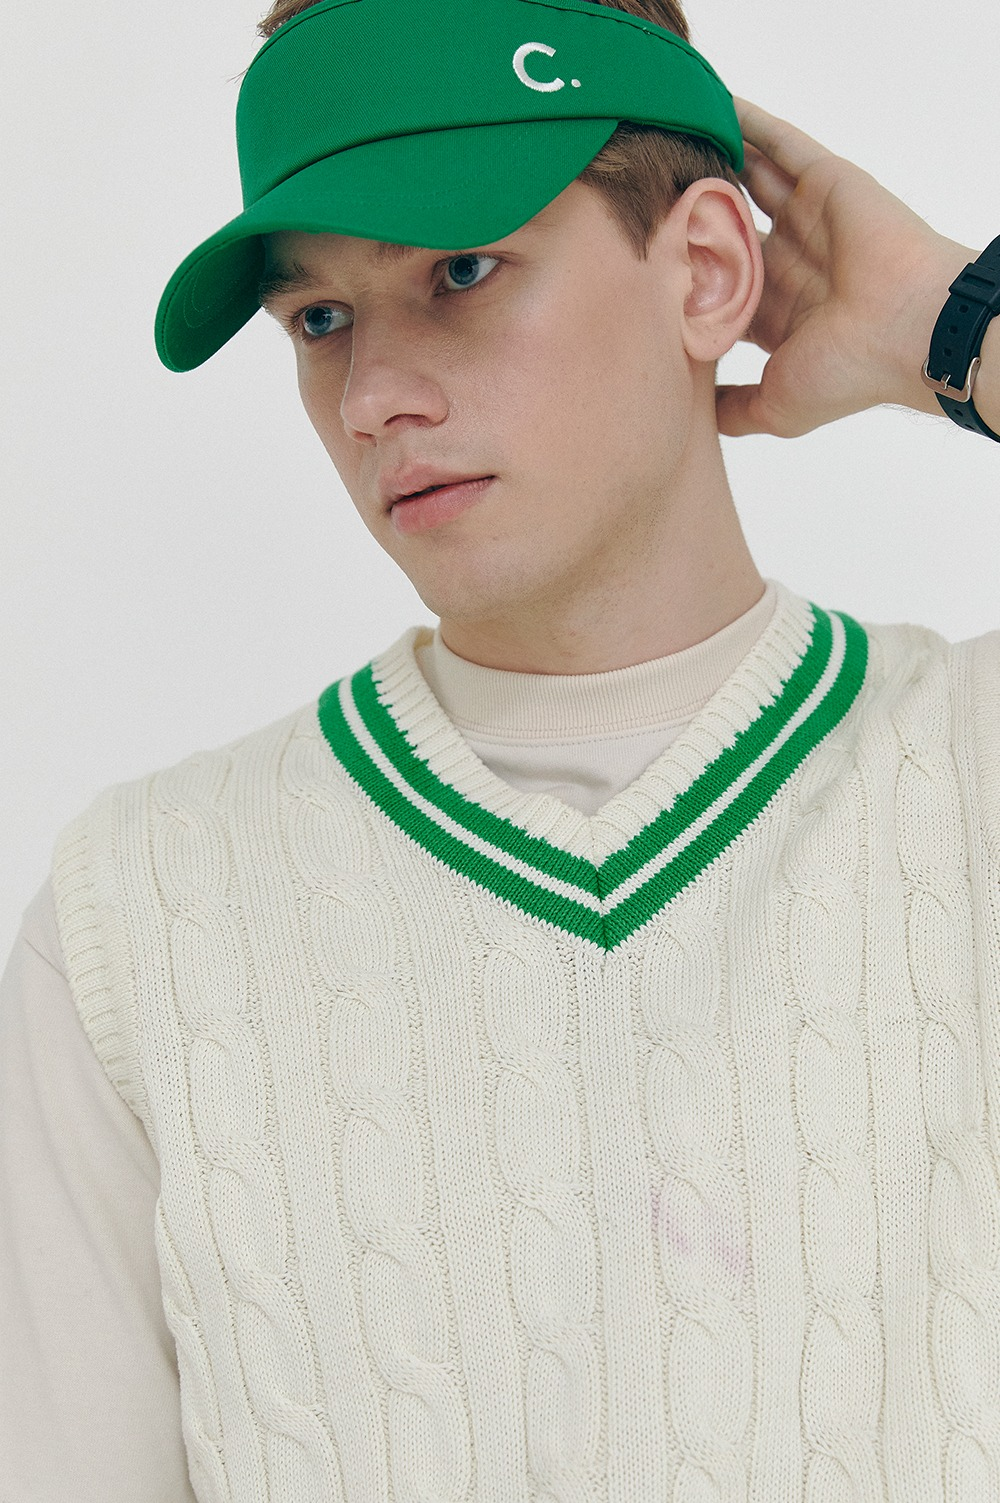 [SS21 CLOVE] Cotton Sun Visor Green